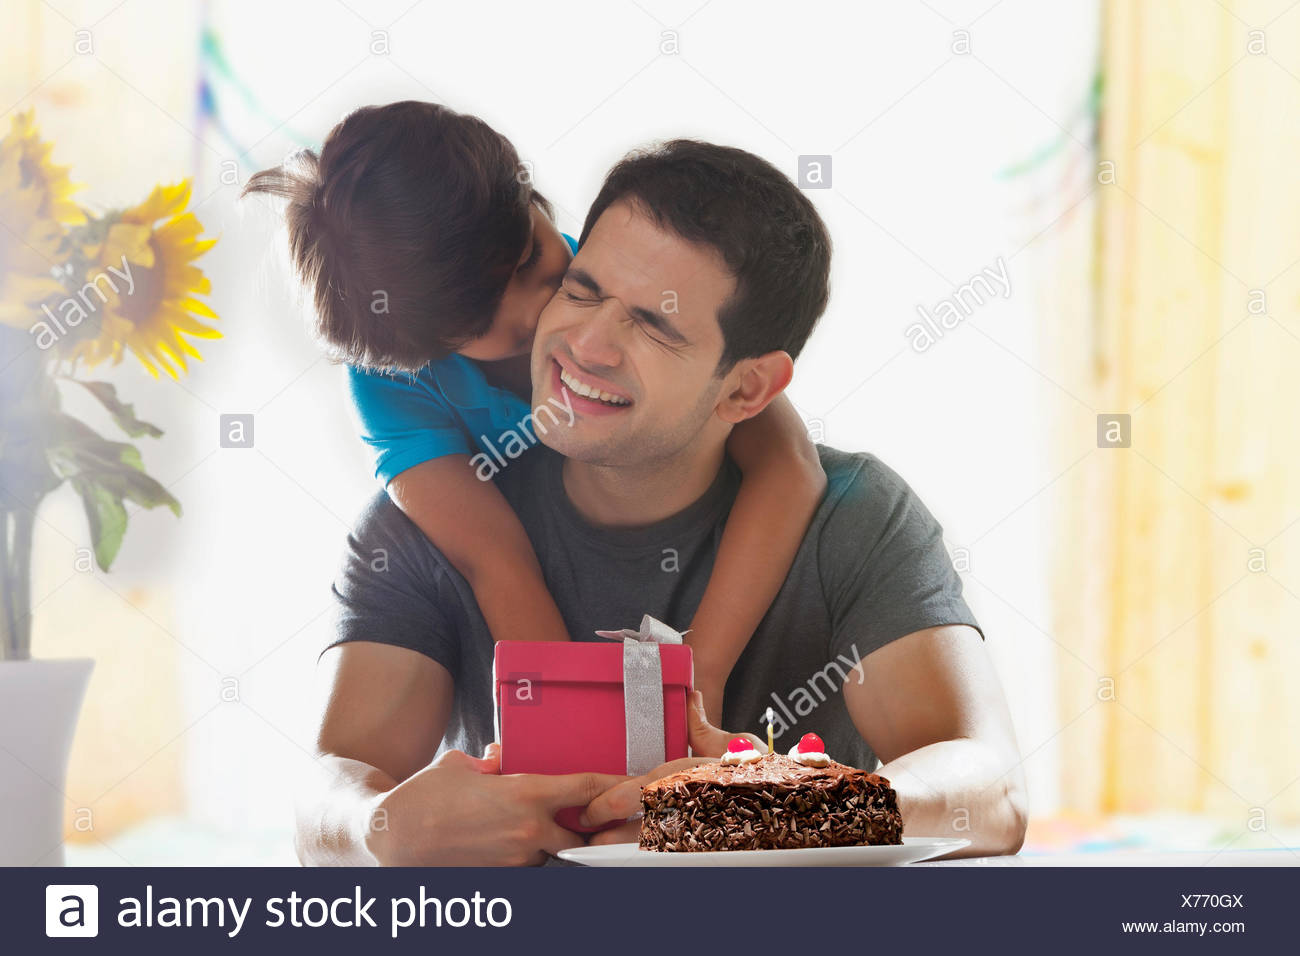 Son Surprising His Father With Birthday Gift Stock Photo 279822618